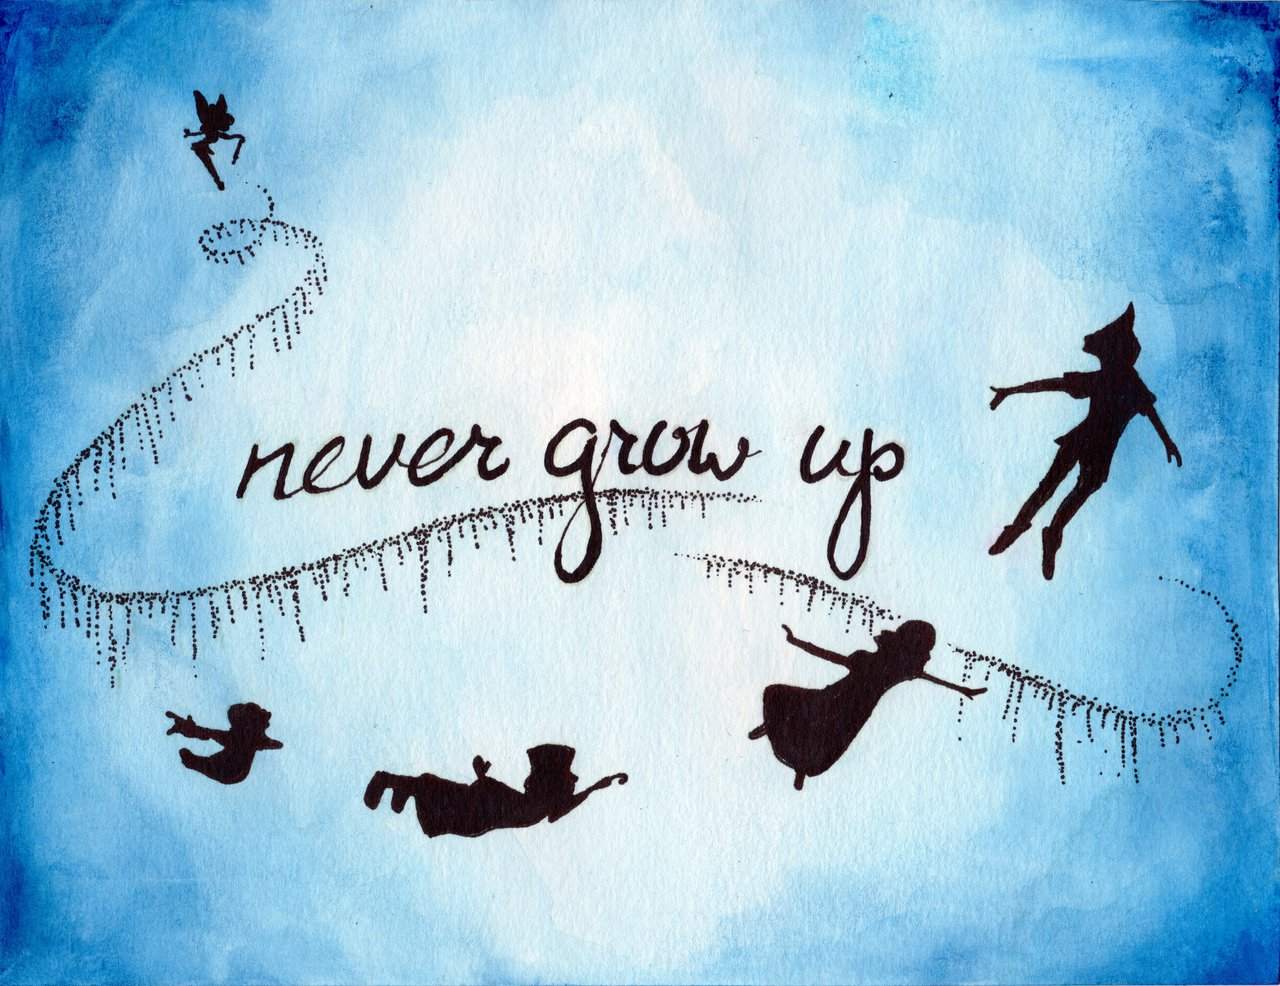 Fresh Peter Pan Quotes About Growing Up Soaknowledge